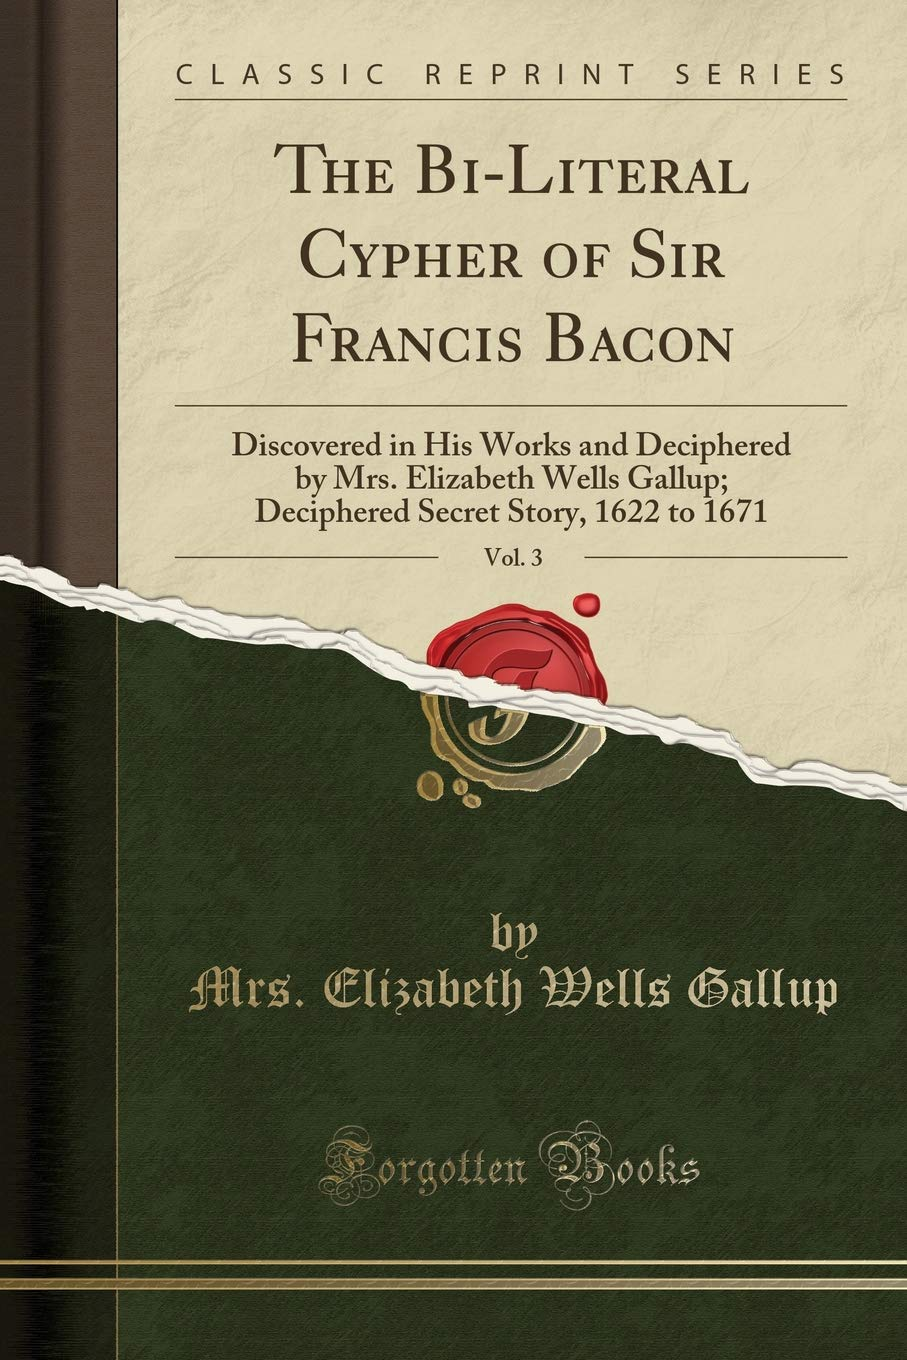 The Bi-Literal Cypher of Sir Francis Bacon, Vol. 3: Discovered in His Works and Deciphered by Mrs. Elizabeth Wells Gallup; Deciphered Secret Story, 1622 to 1671 (Classic Reprint) ebook